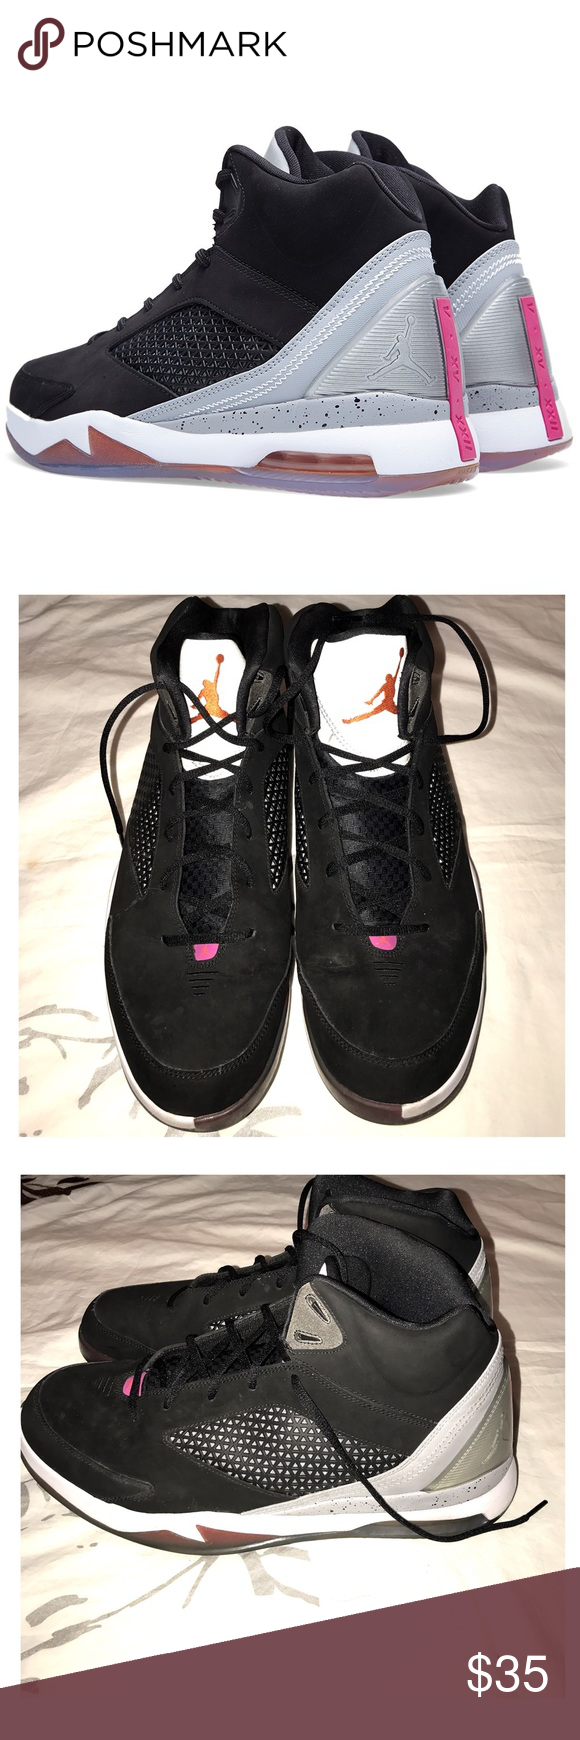 74b590b2be86 ... Future Flight Remix Sneakers wholesale sales e77d7 0bb3f  nike jordan  V. XV . XXII great condition nike jordan V. XV .